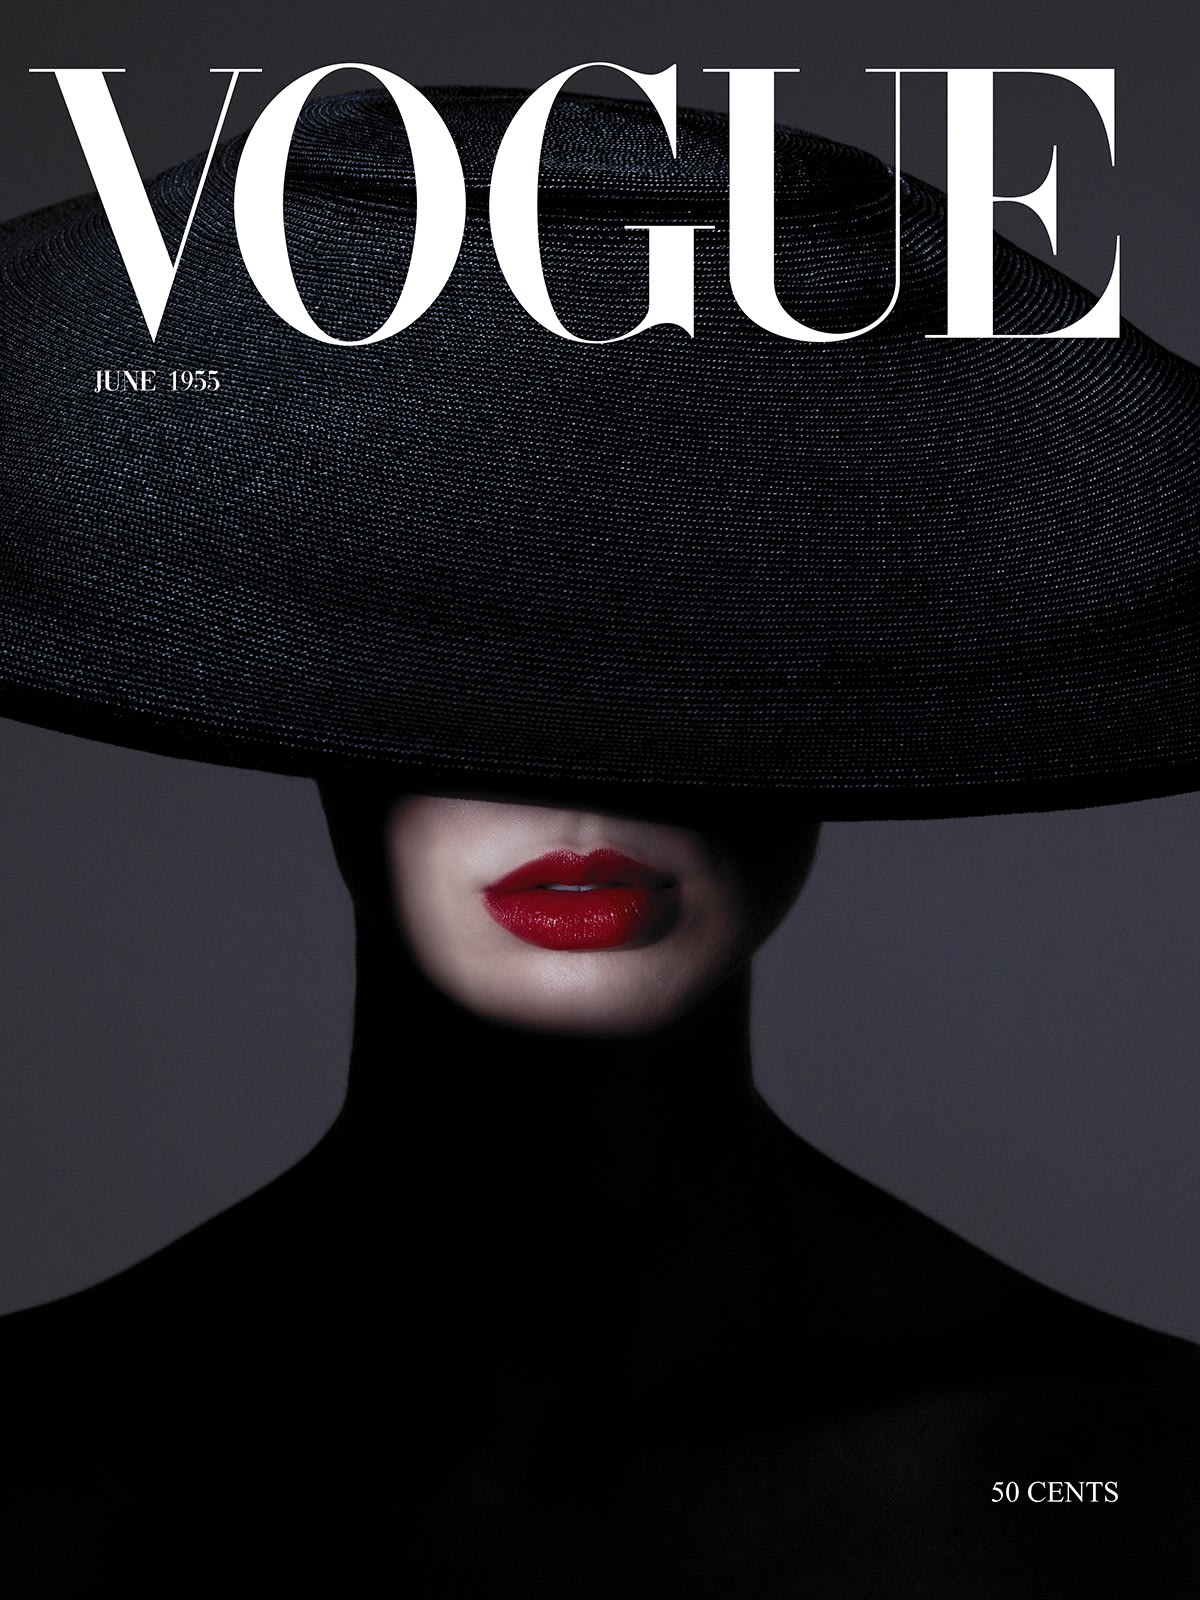 Vogue by Tyler Shields